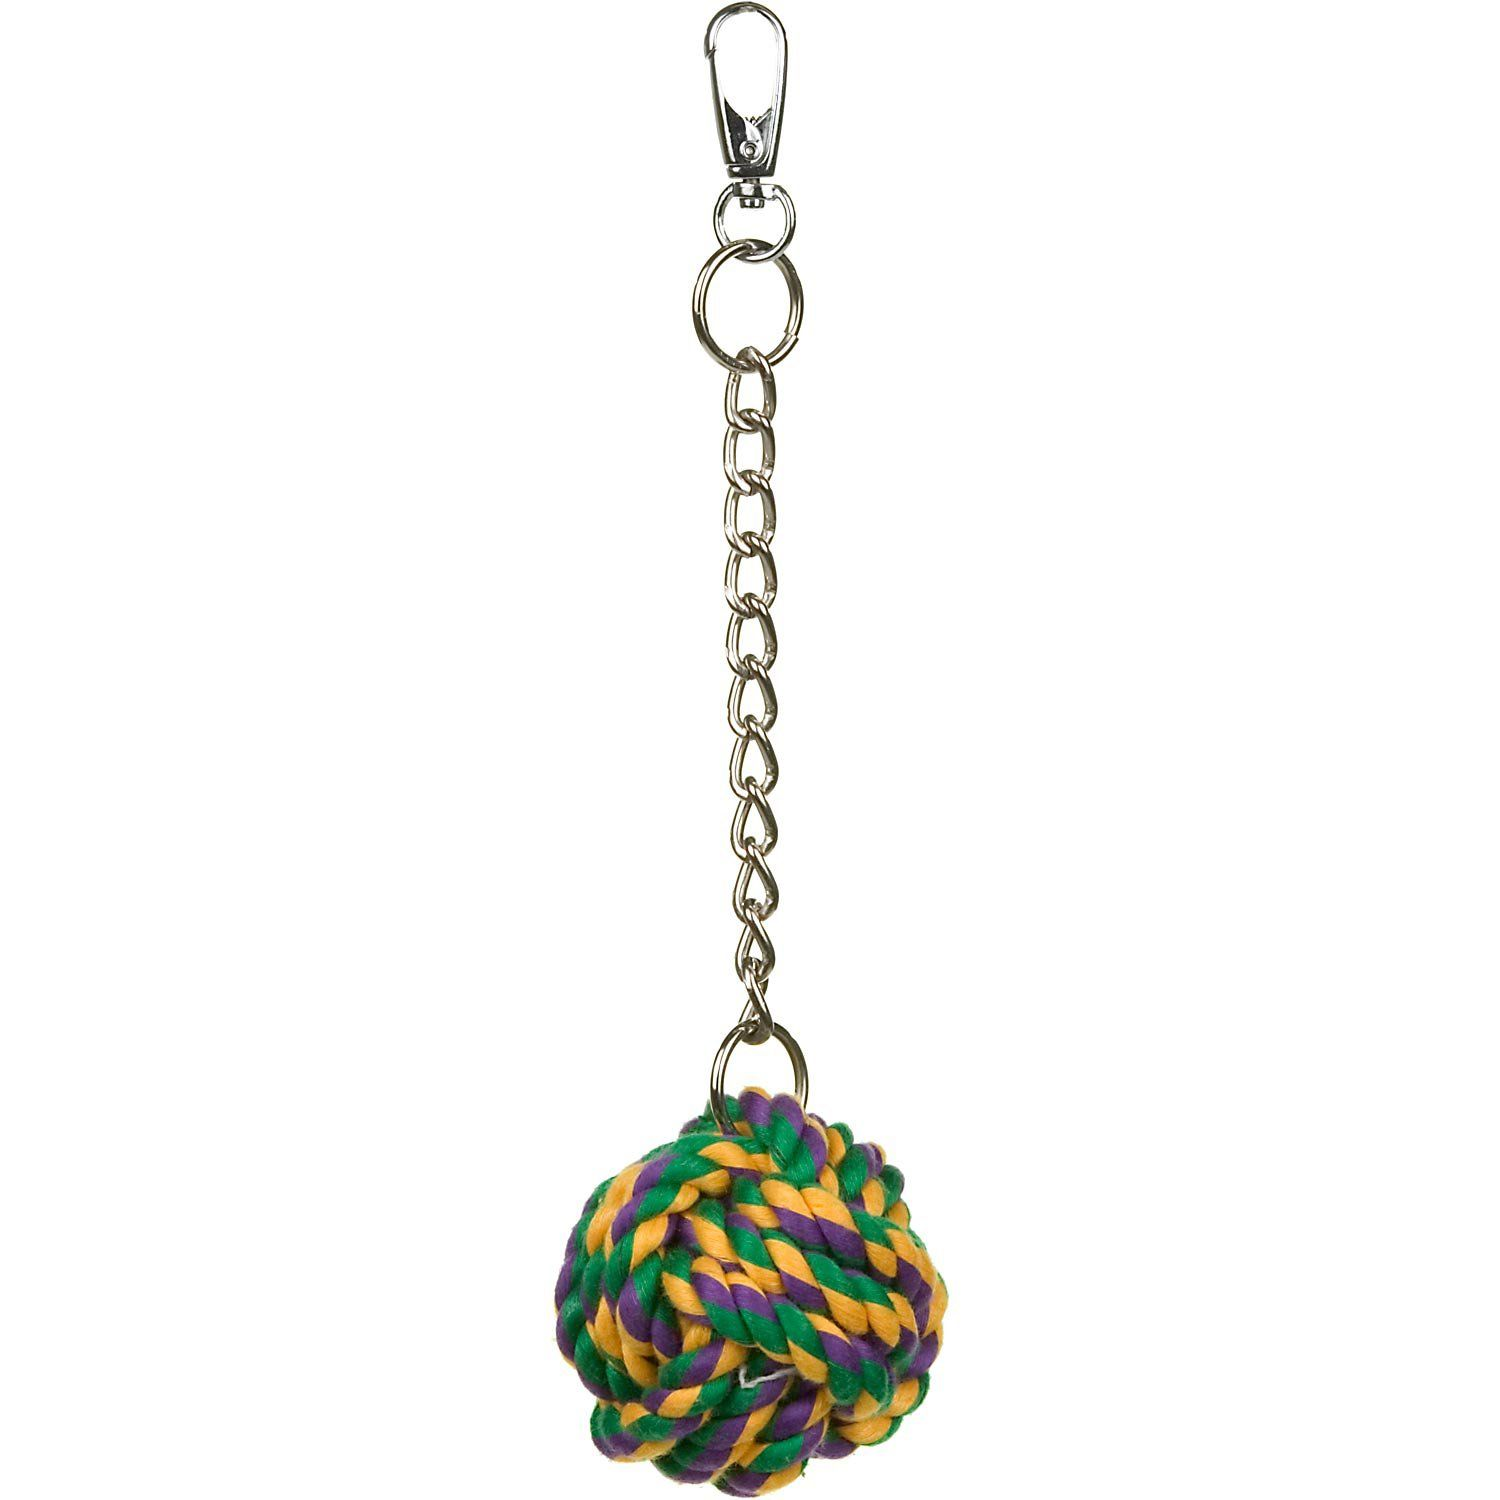 "Multipet+Nuts+for+Knots+Bird+Toy+-+10""L,+Adds+a+colorful+dimension+to+any+bird+cage.+Made+of+durable+rope+all+tied+up+in+knots+this+toy+is+sure+to+be+a+long-lasting+pet+pleaser.+Includes+a+durable+metal+chain+and+clasp+that+attaches+to+any+wire+cage. - http://www.petco.com/shop/en/petcostore/product/multipet-nuts-for-knots-bird-toy"